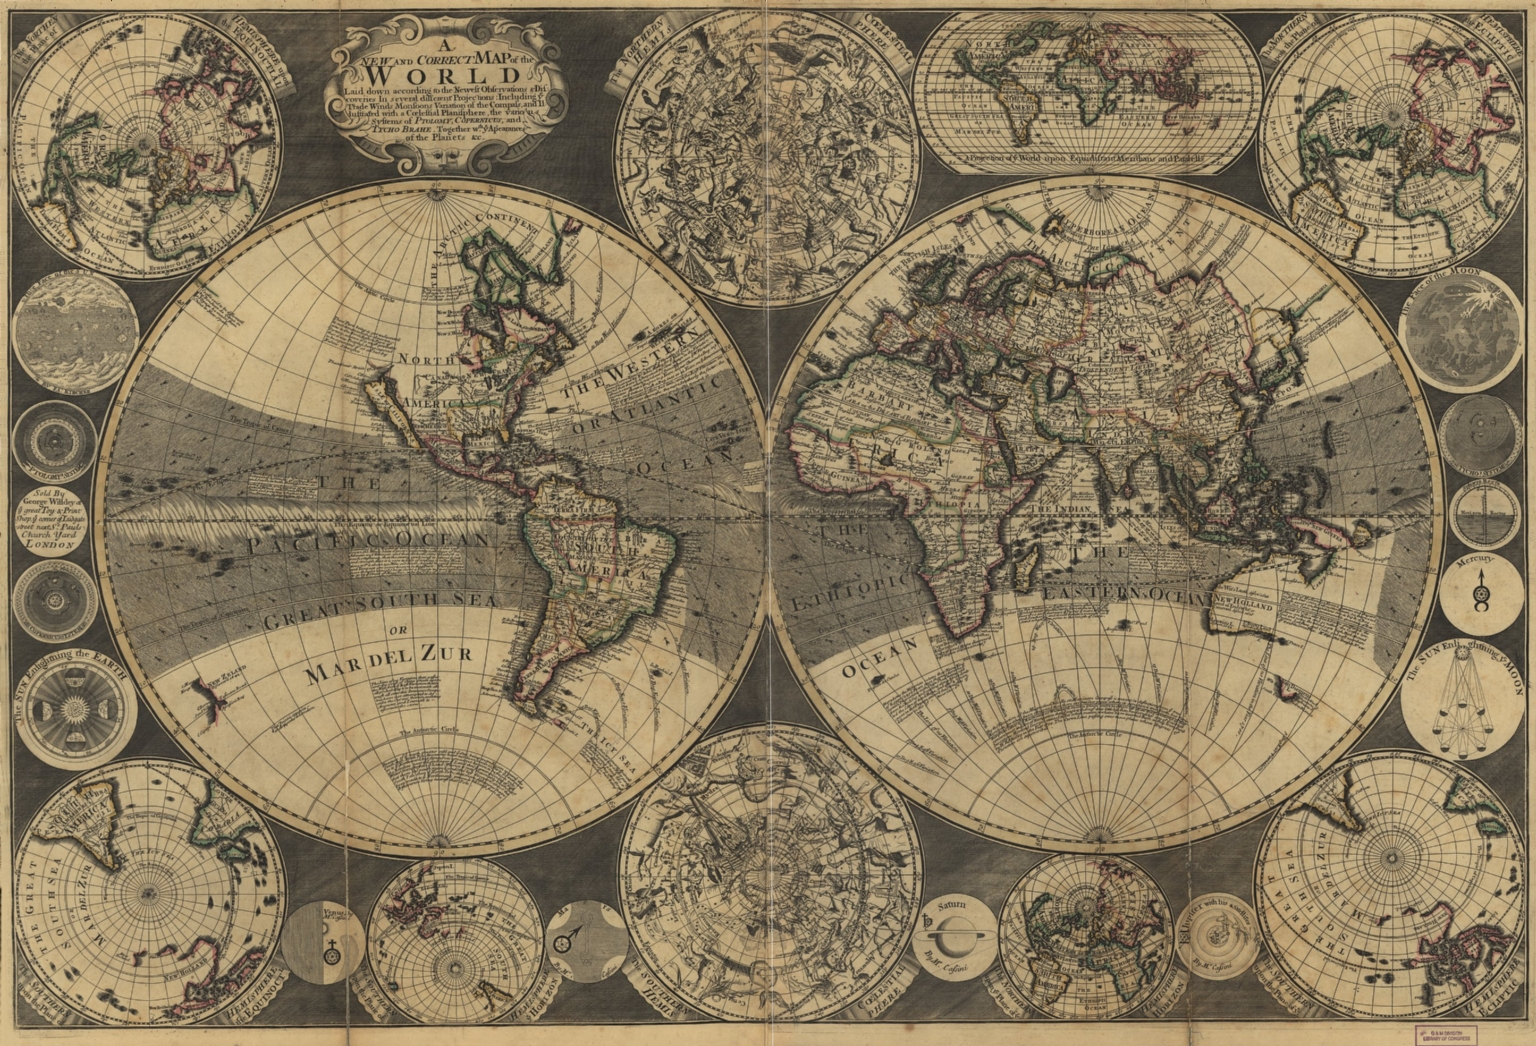 A new and correct map of the world : laid down according to the newest observations & discoveries in several different projections including the trade winds, monsoons, variation of the compass, and illustrated with a coelestial planisphere, the various systems of Ptolomy, Copernicus, and Tycho Brahe together with ye apearances of the planets &c.